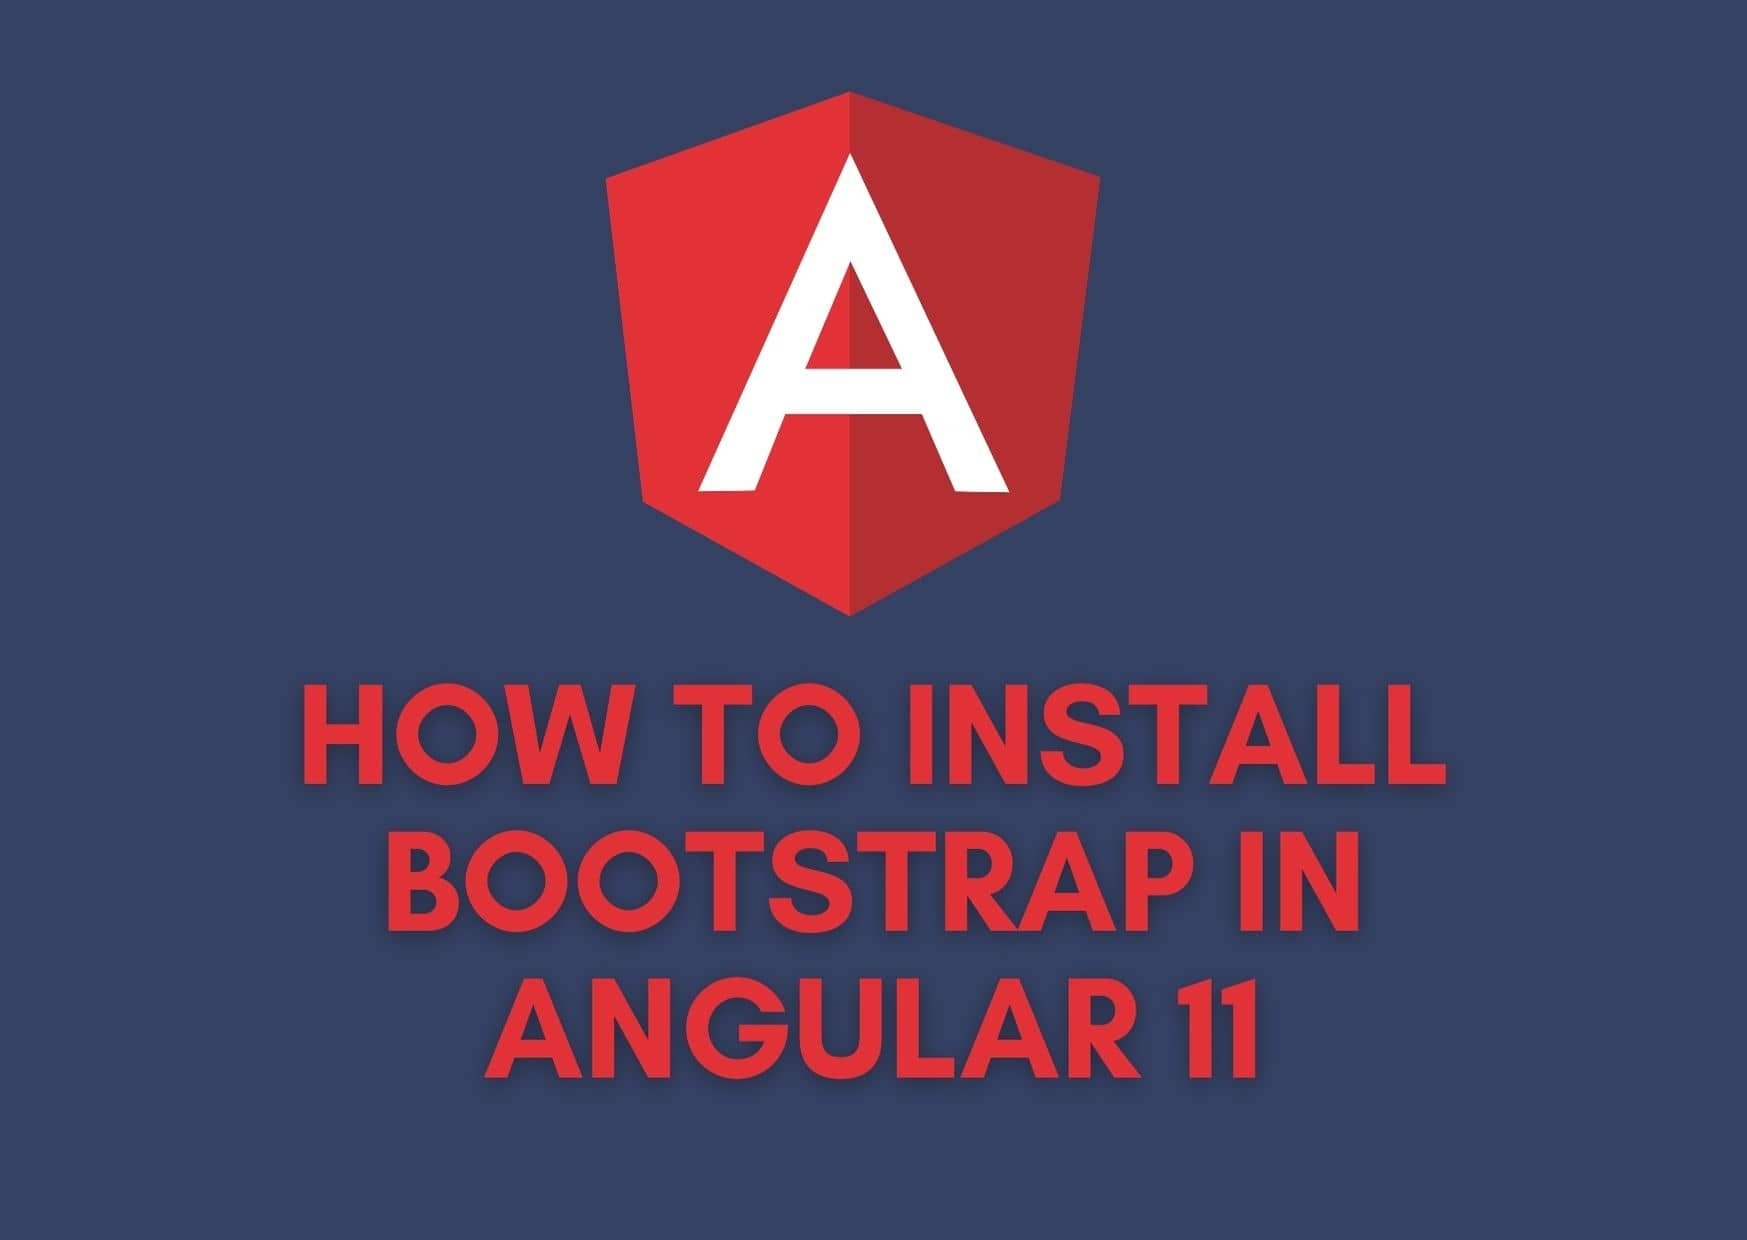 Adding Bootstrap To Angular 11 Project With CLI